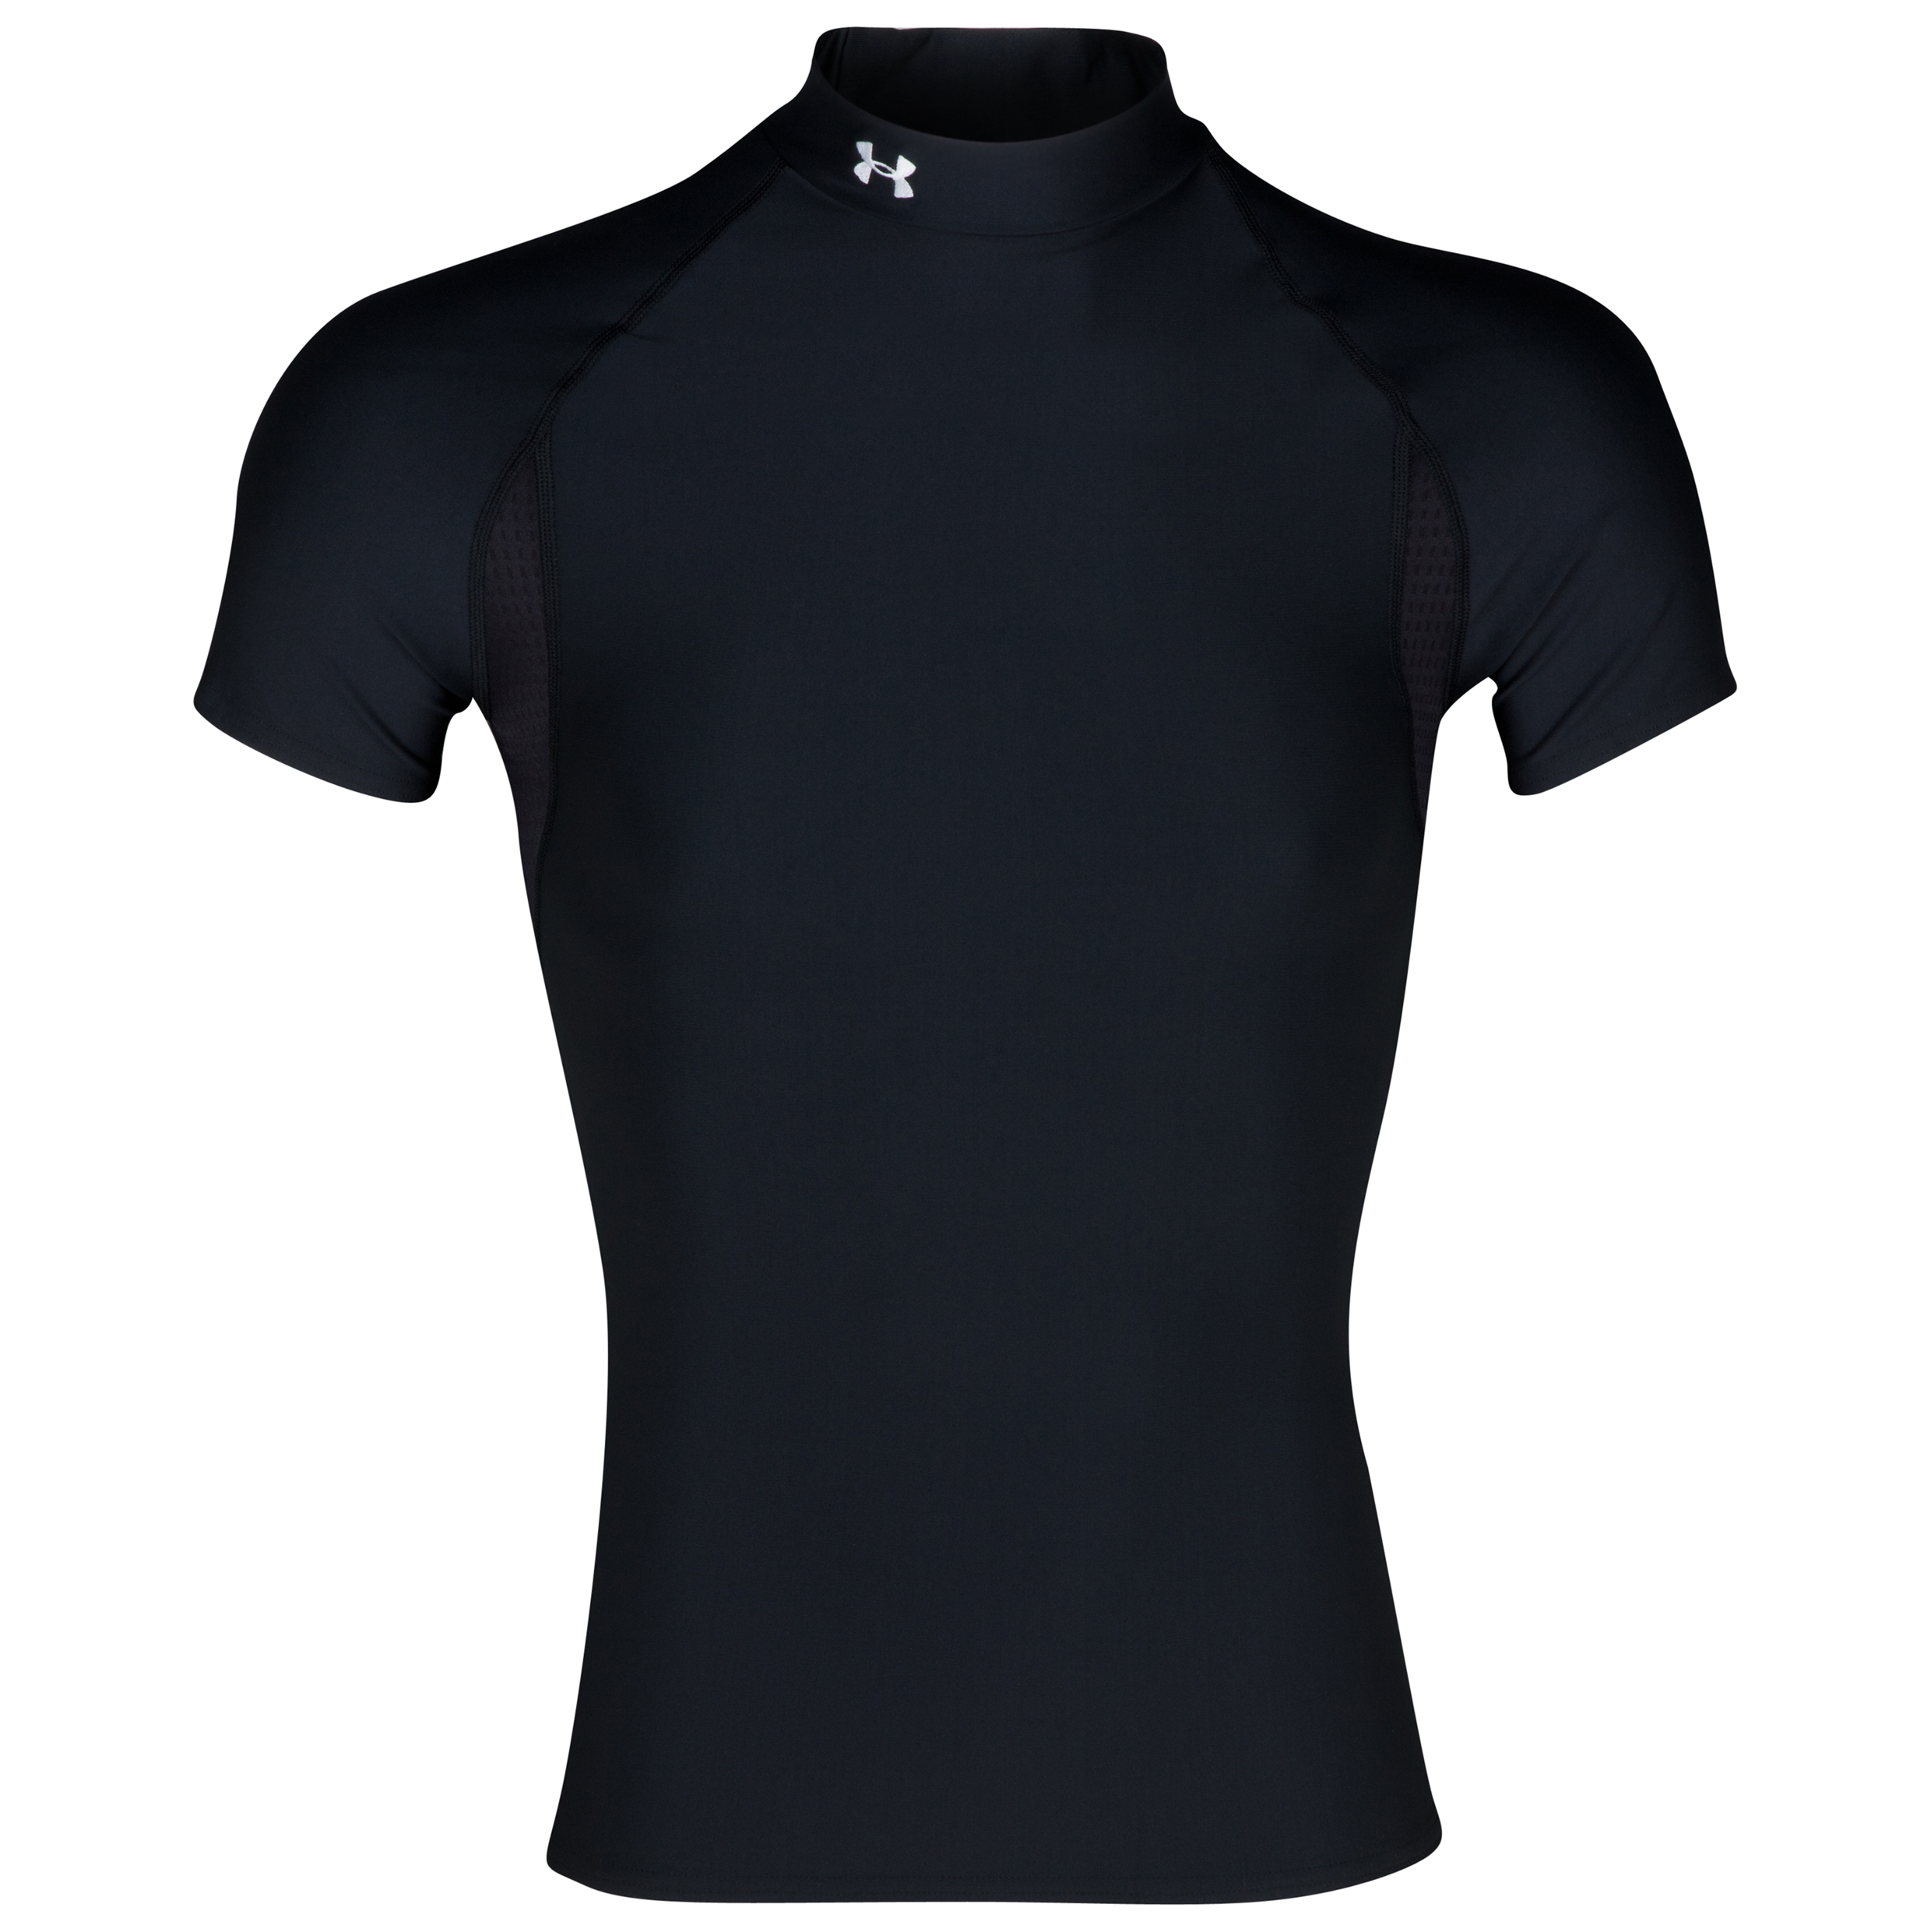 Under Armour Coldgear Short Sleeve Evo Mock Top - Black